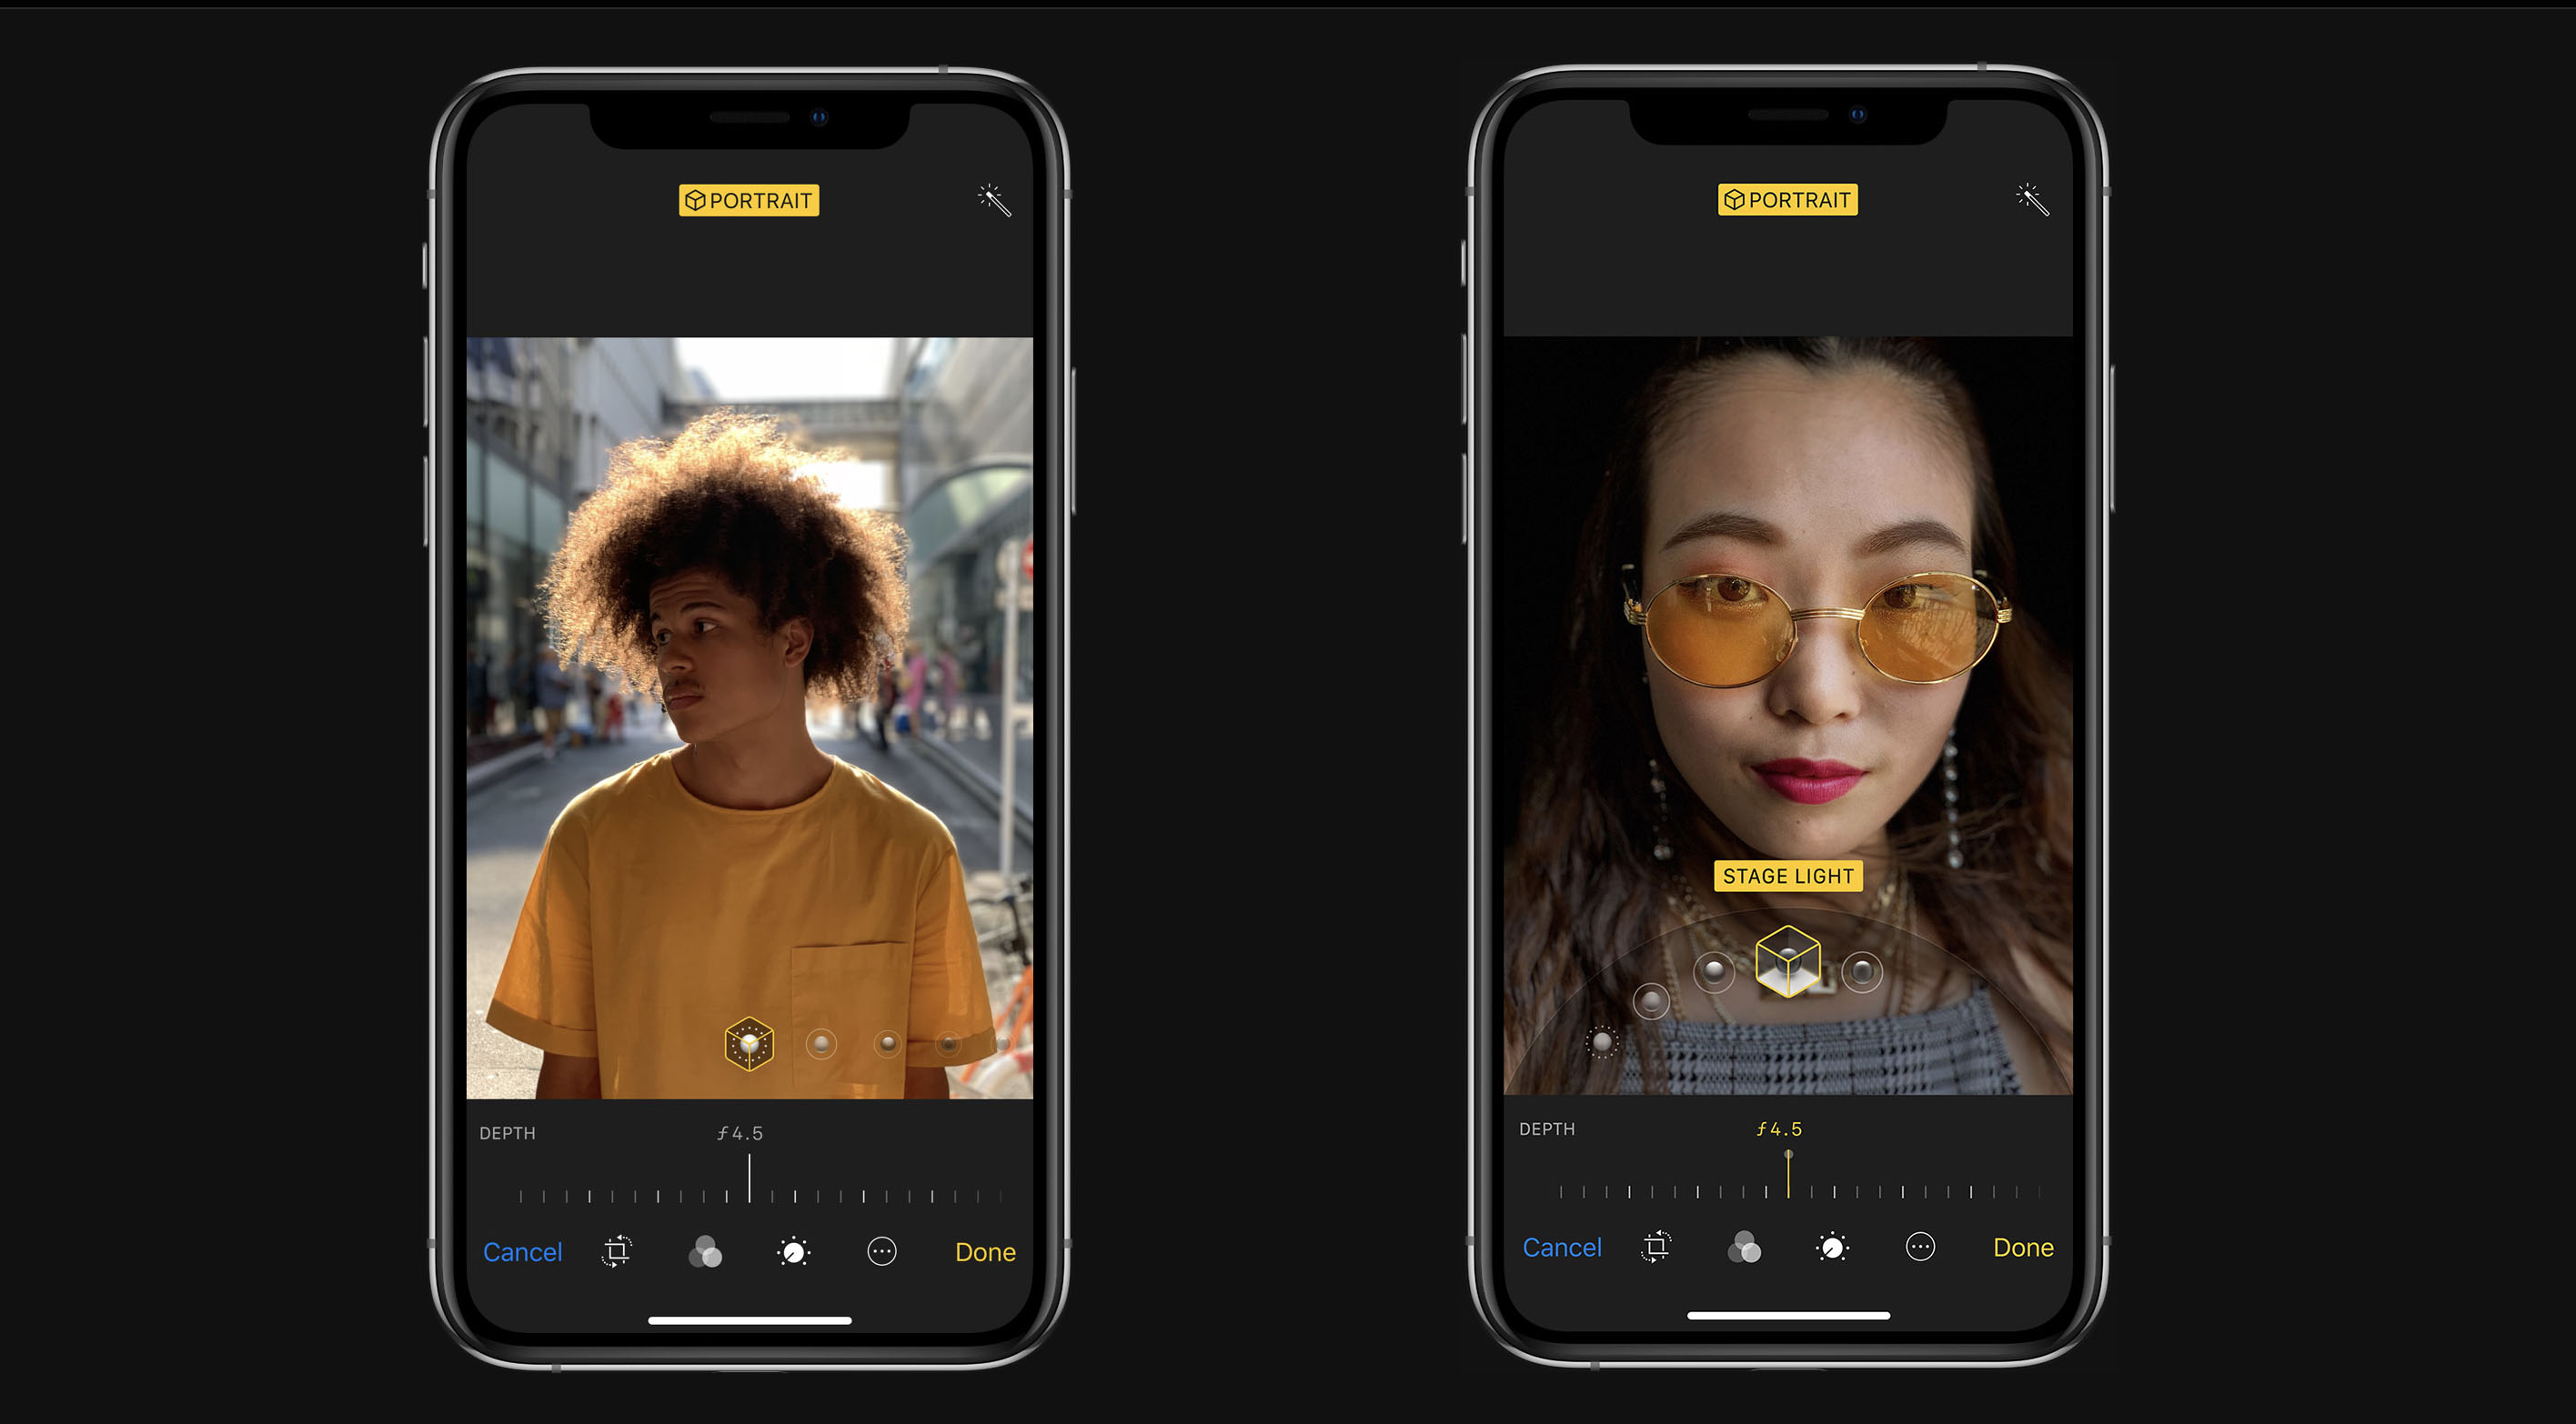 Apple wins big fight to say the iPhone X/XS camera offers 'studio quality' portraits